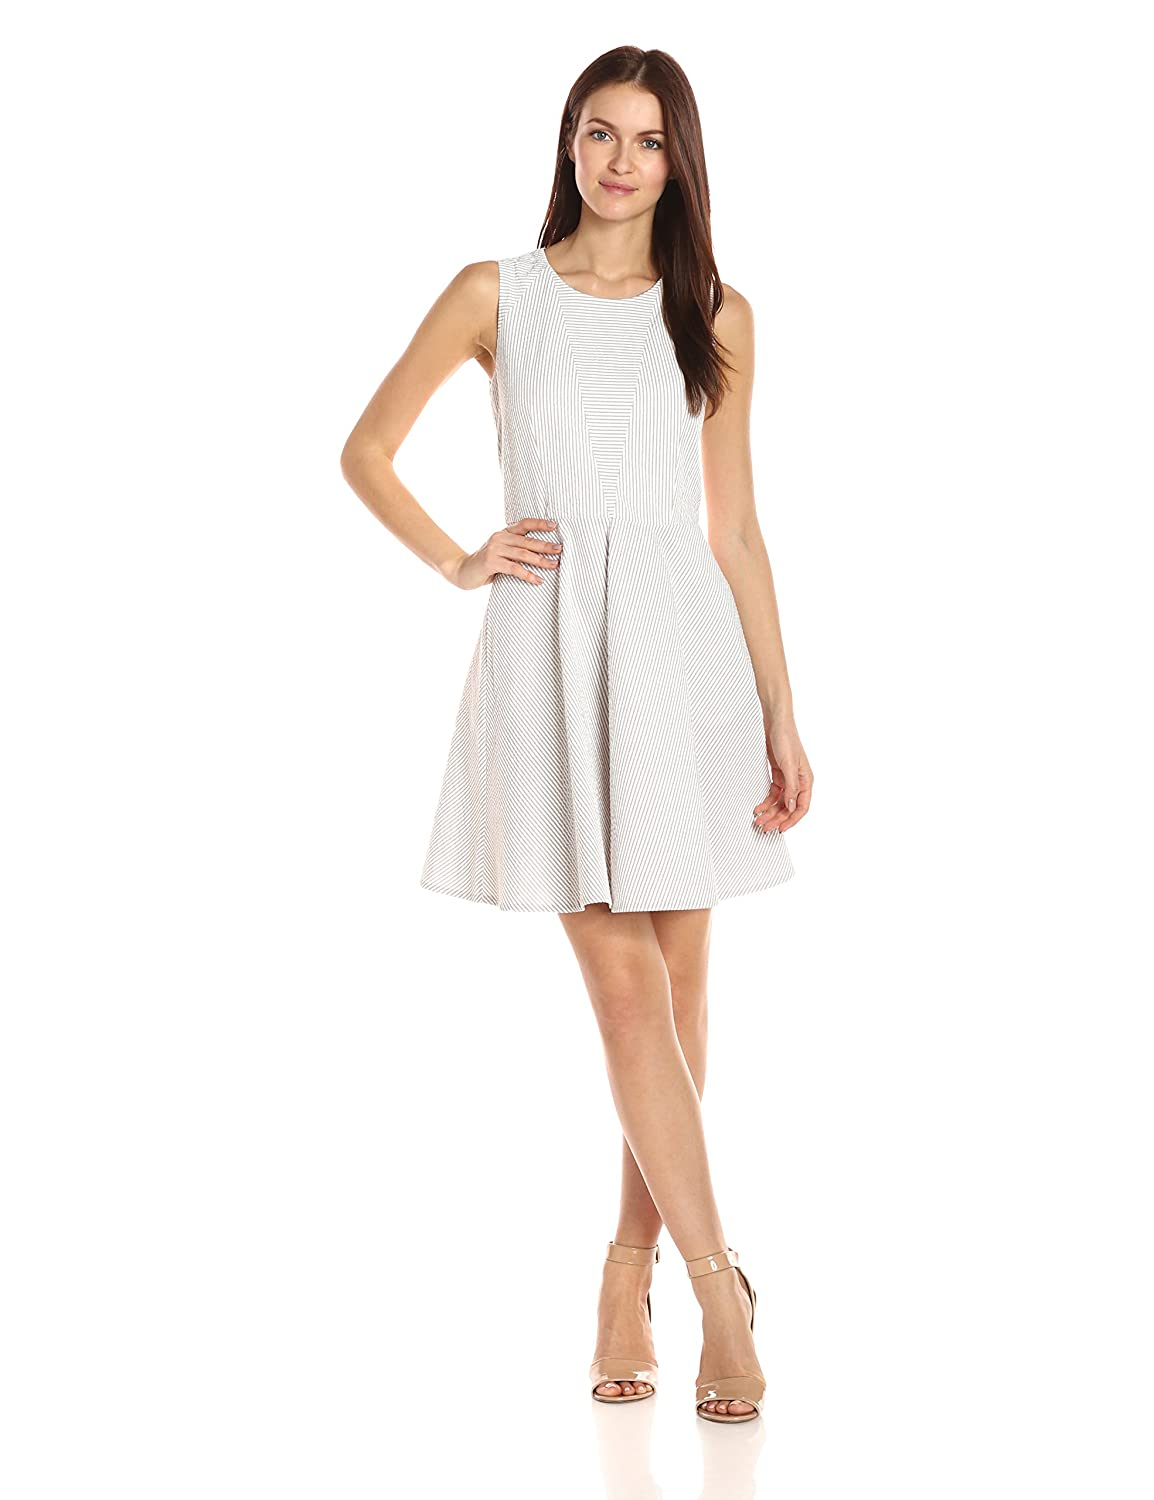 Seersucker day dress with crew neckline and fit and flare hem line A|X Armani Exchange Women' s Apparel 3YYA43YNN7Z